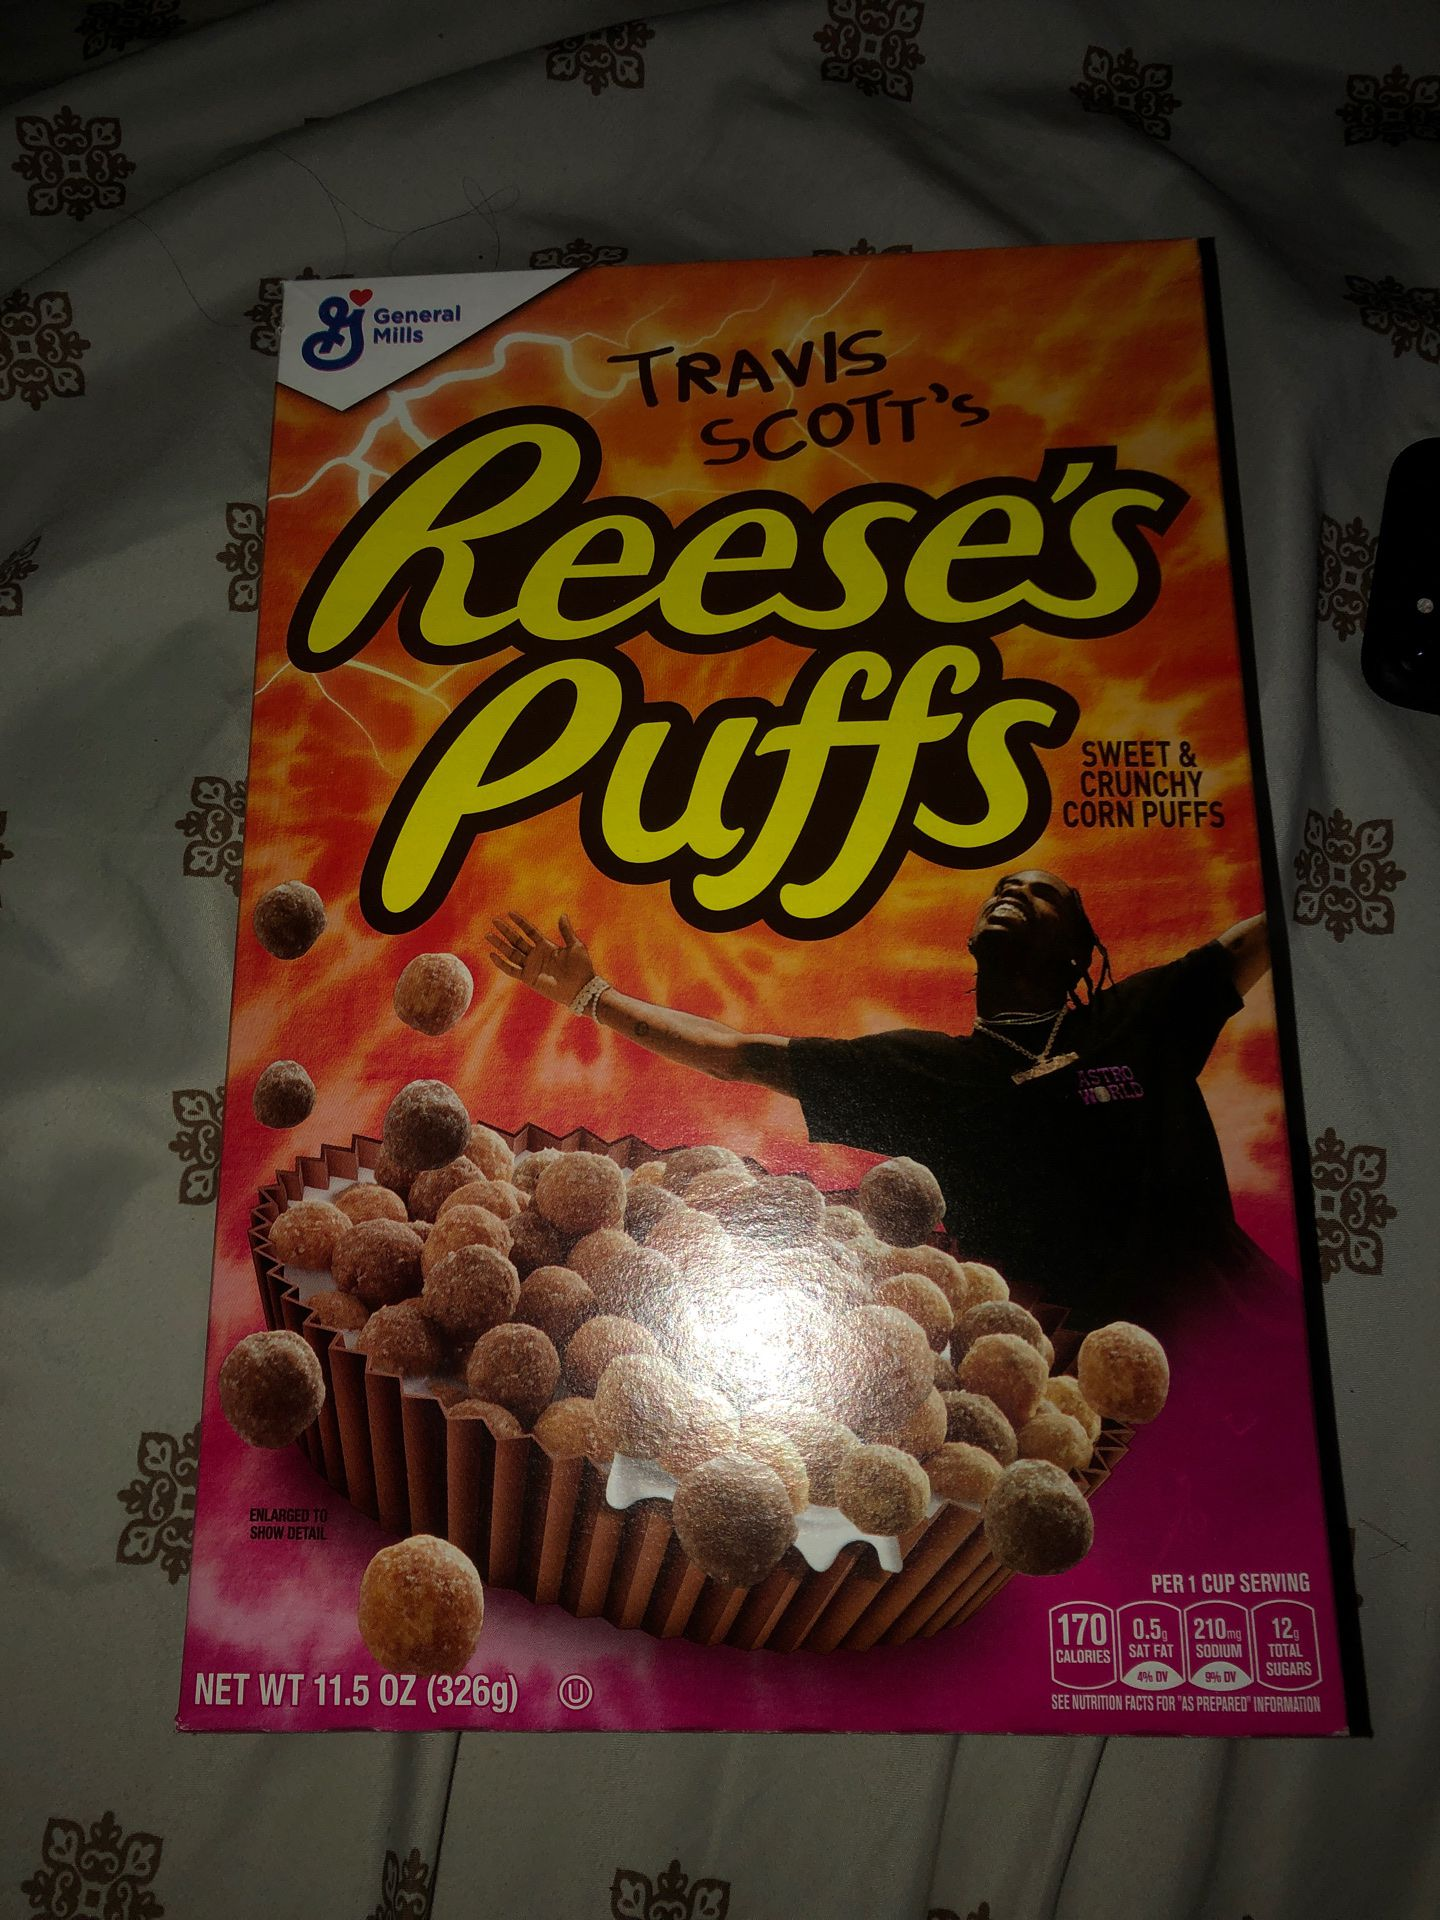 Travis Scott limited edition cereal